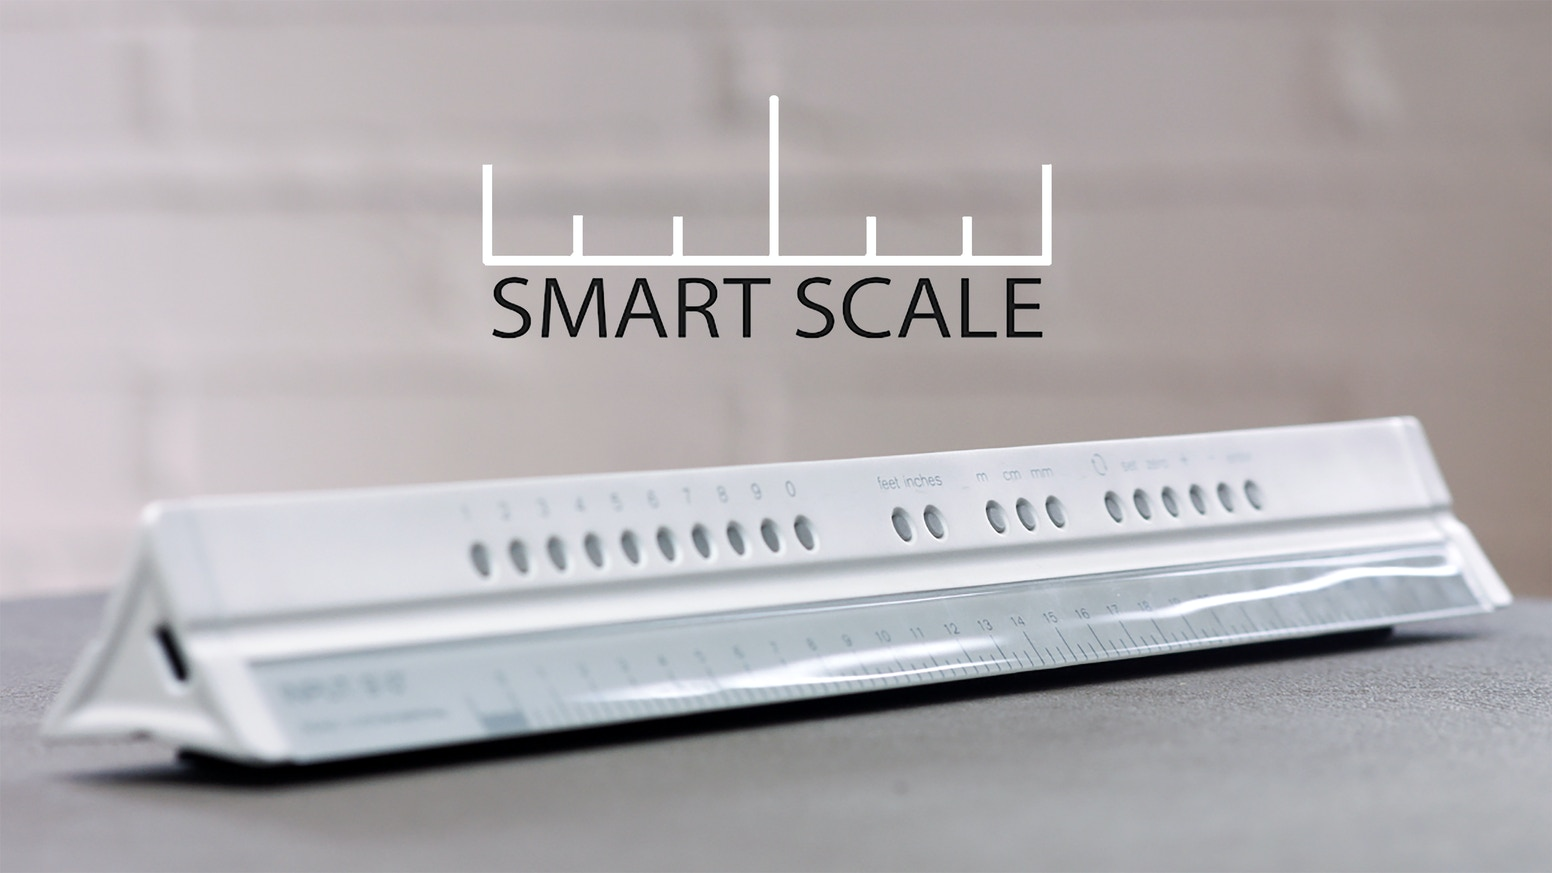 A digital ruler that can be customized for Architects, Designers and Builders. Never have difficulty with scales or units again! Now that the Kickstarter is over pre order through Indiegogo in the link below.